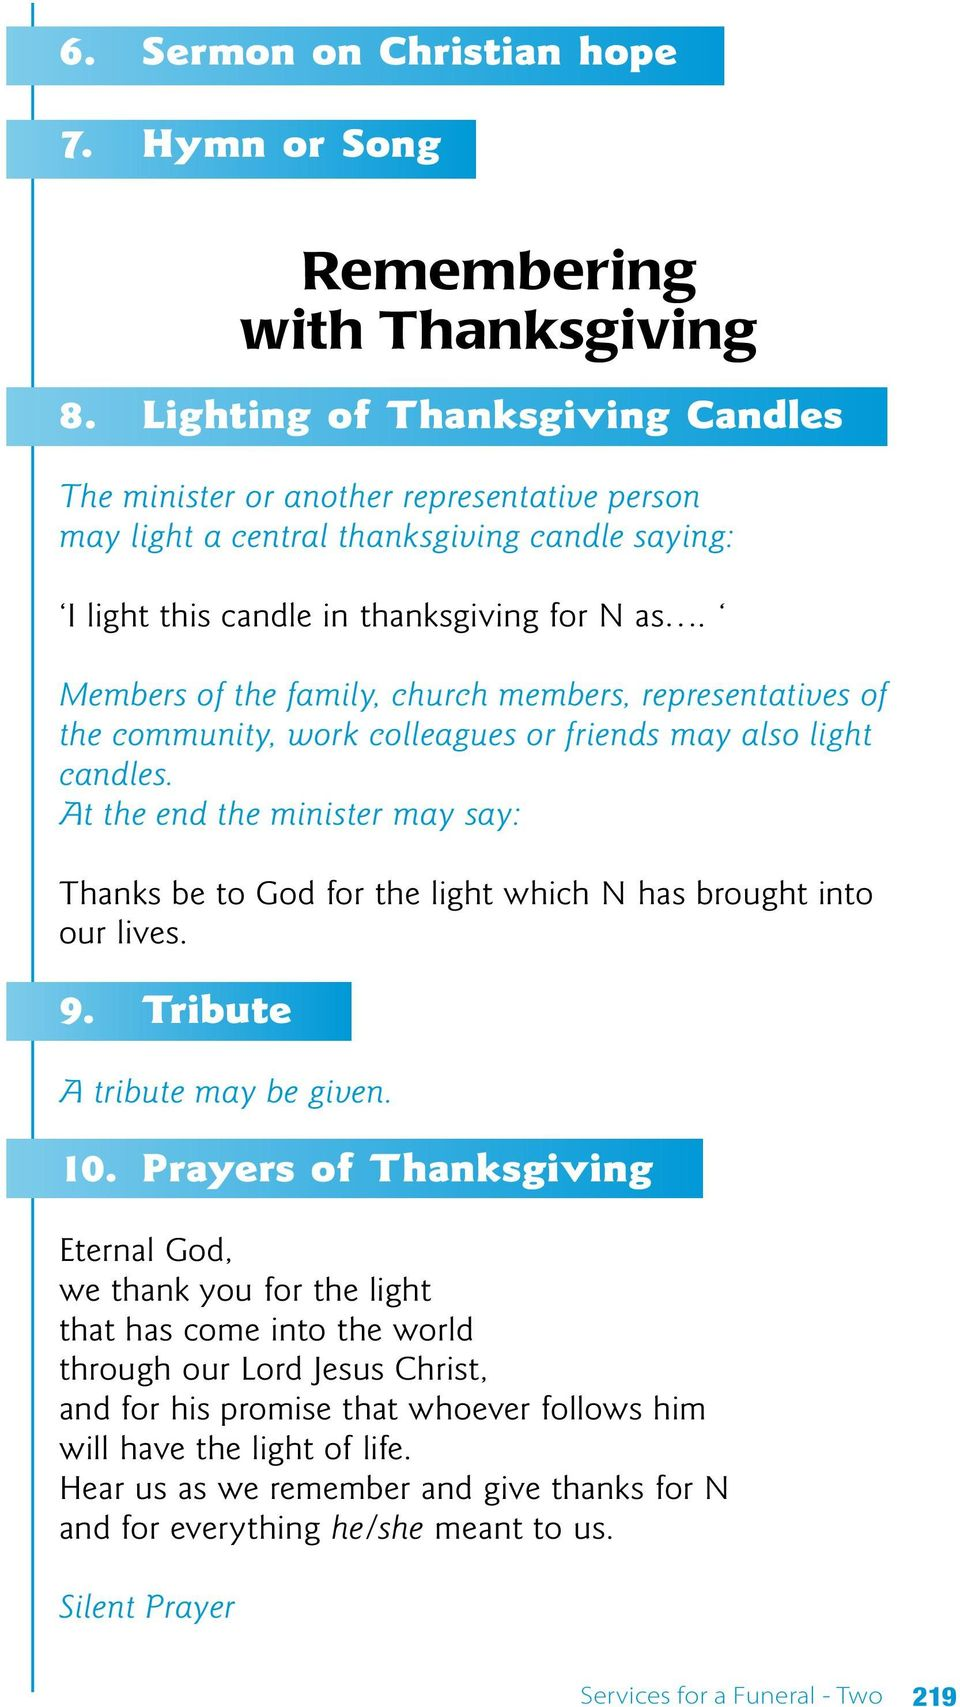 Members of the family, church members, representatives of the community, work colleagues or friends may also light candles.